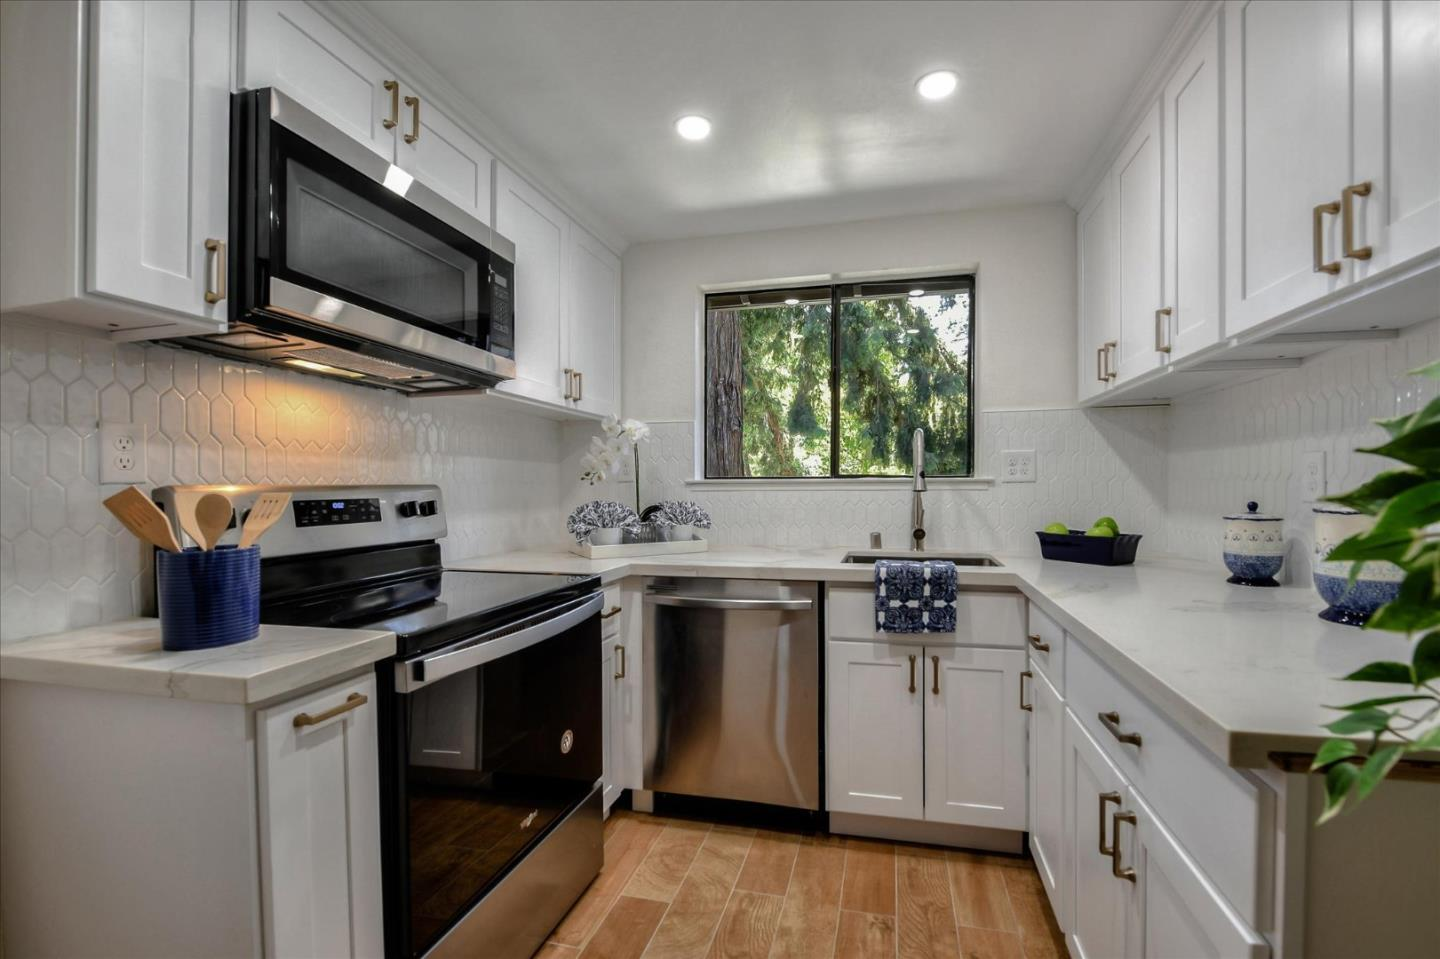 Located in the Heart of Silicon Valley, amazing Sunnyvale upper condo unit  with 822 sq. ft. of living space. The kitchen has been updated w/ white cabinets, quartz counters & full back splash, new sink & faucet.  You will love starting and ending your day in the spacious master bedroom with tons of natural light, newer carpet and ample closet space.  The bathroom has been tasteful remodeled showcasing a new dual vanity, quartz counters, sinks, new fixtures & faucets, new shower panel & toilet, SS medicine cabinet and new floor tiles. The living room opens to an generous size deck for outdoor entertainment.  Quiet complex with community swimming pool, spa and tennis courts and lots of parking in the complex, Close to several major High-Tech Cos including Apple, Google, LinkedIn, Microsoft,  and Sunnyvale Downtown. Easy access to Freeways 101, 237, 85, 280, Lawrence and Central expressways, and Cal-train station.